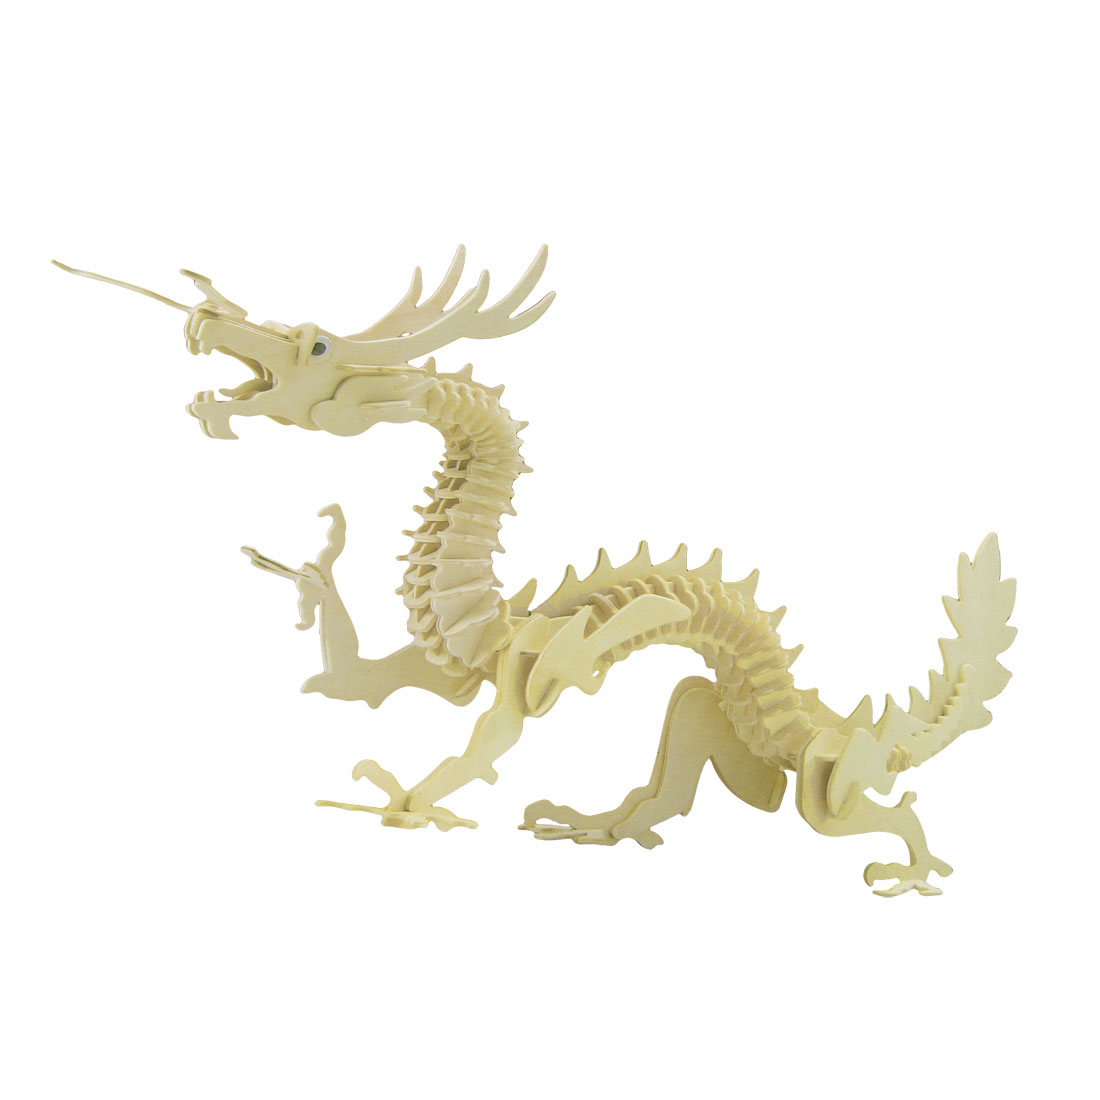 3D Dragon Design Wooden Model Toy Woodcraft Construction Kit